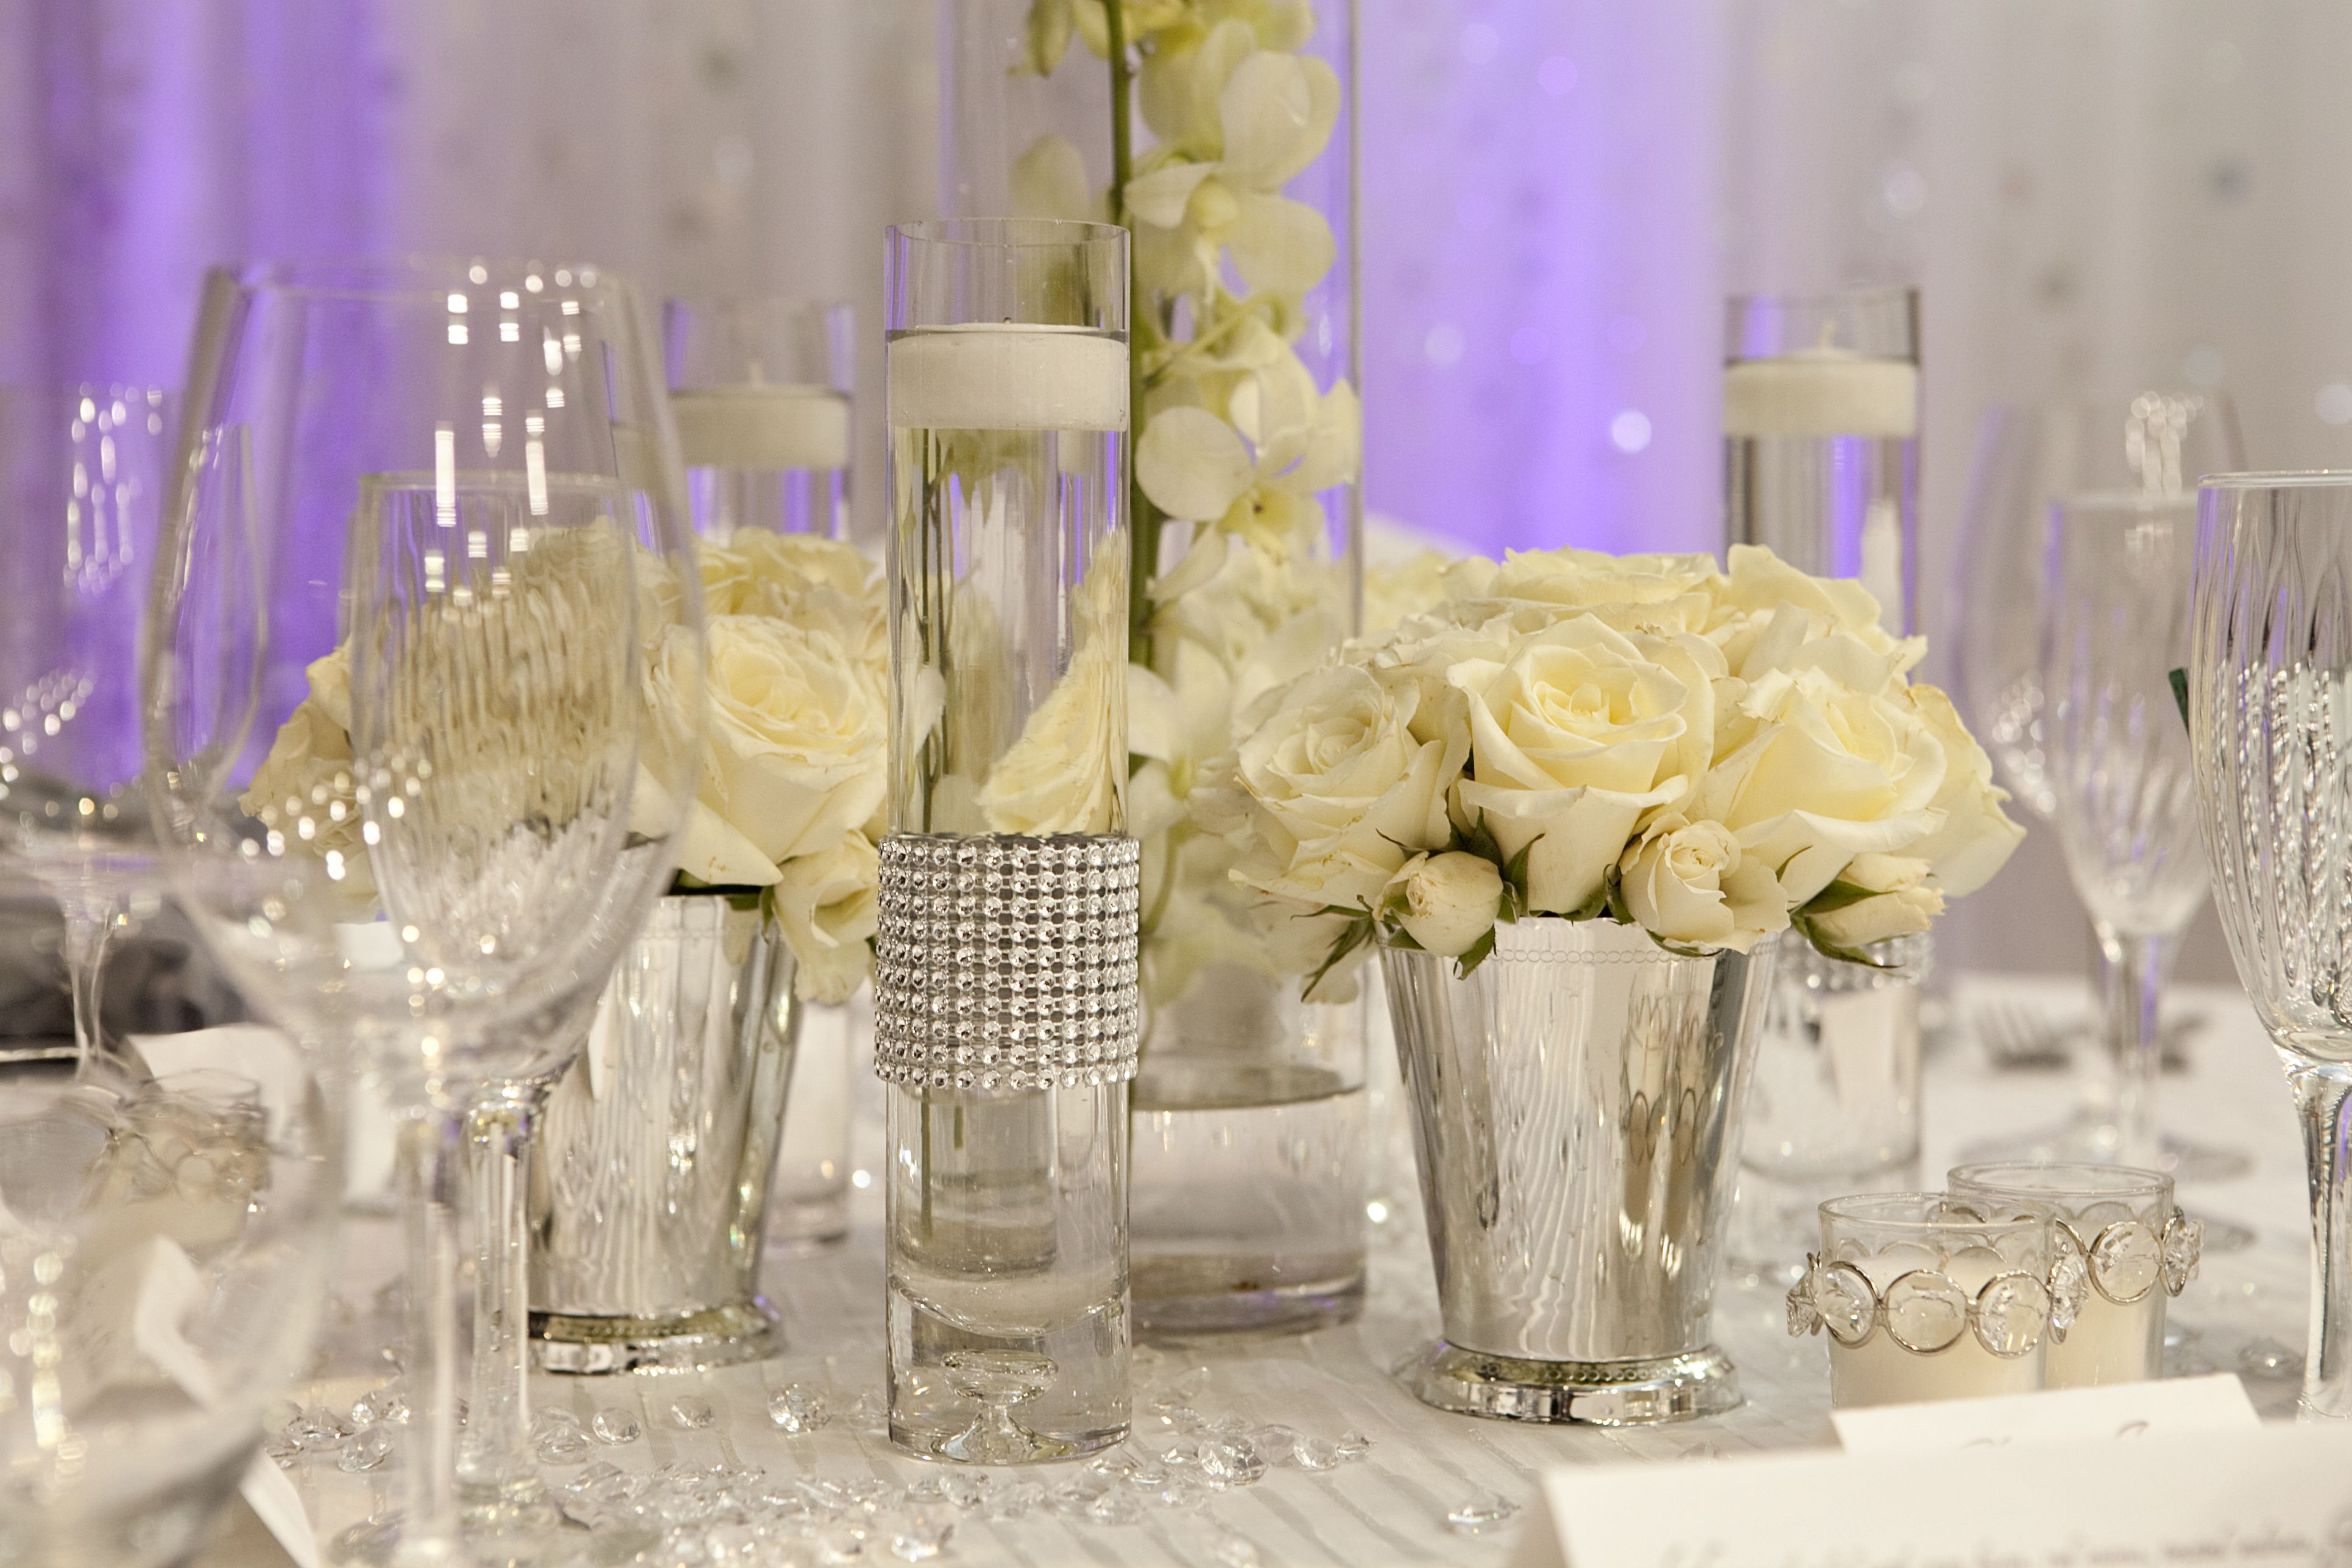 All Blinged Out We Rent The Bling Rings And Swarovski Crystals For The Tables Wedding Flower Arrangements Wedding Expenses Wedding Centerpieces